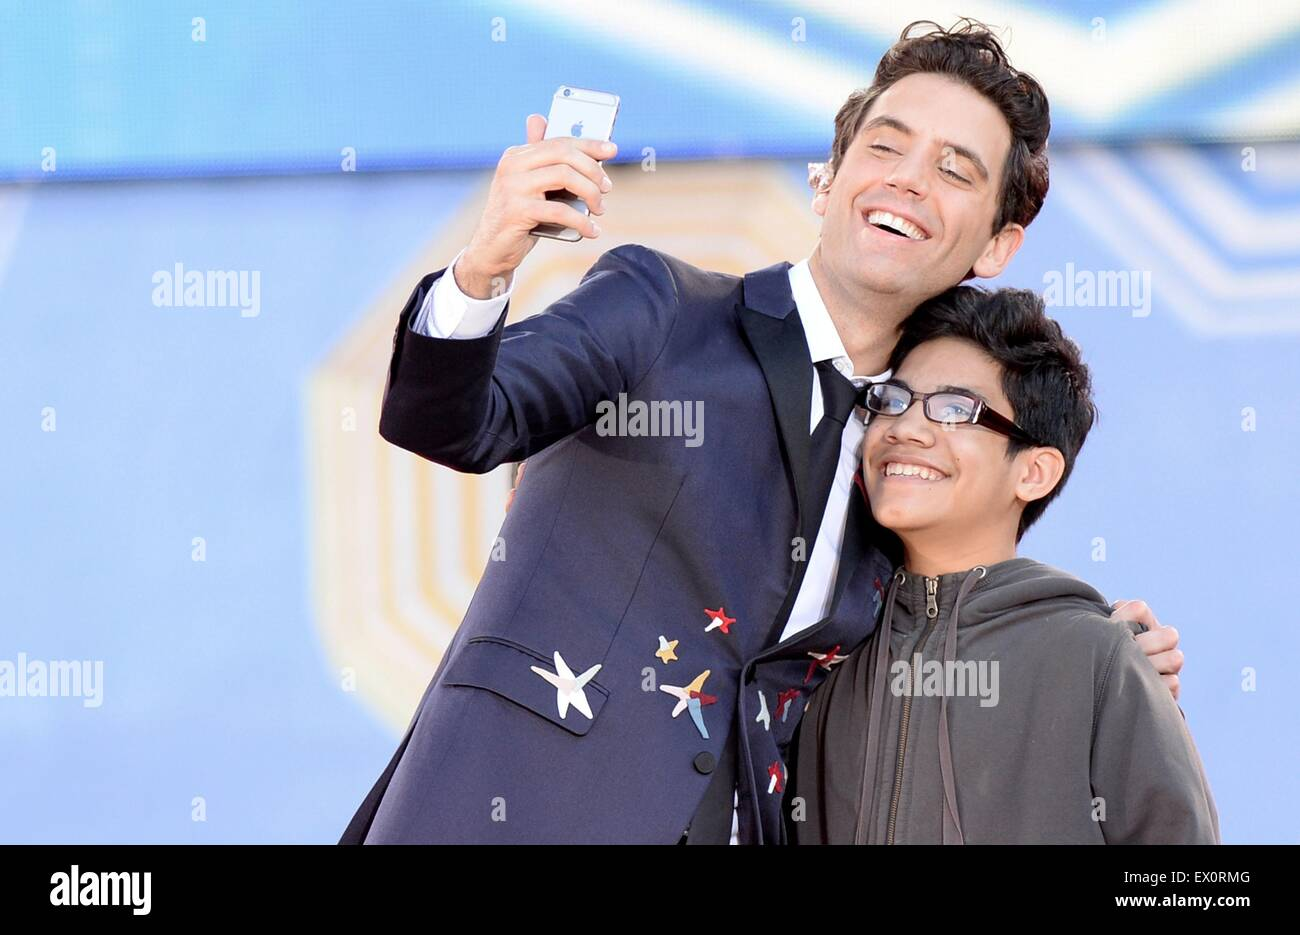 New York, NY, USA. 3rd July, 2015. Mika, Ozzie on stage for ABC's Good Morning America (GMA) Fun in the Sun - Stock Image